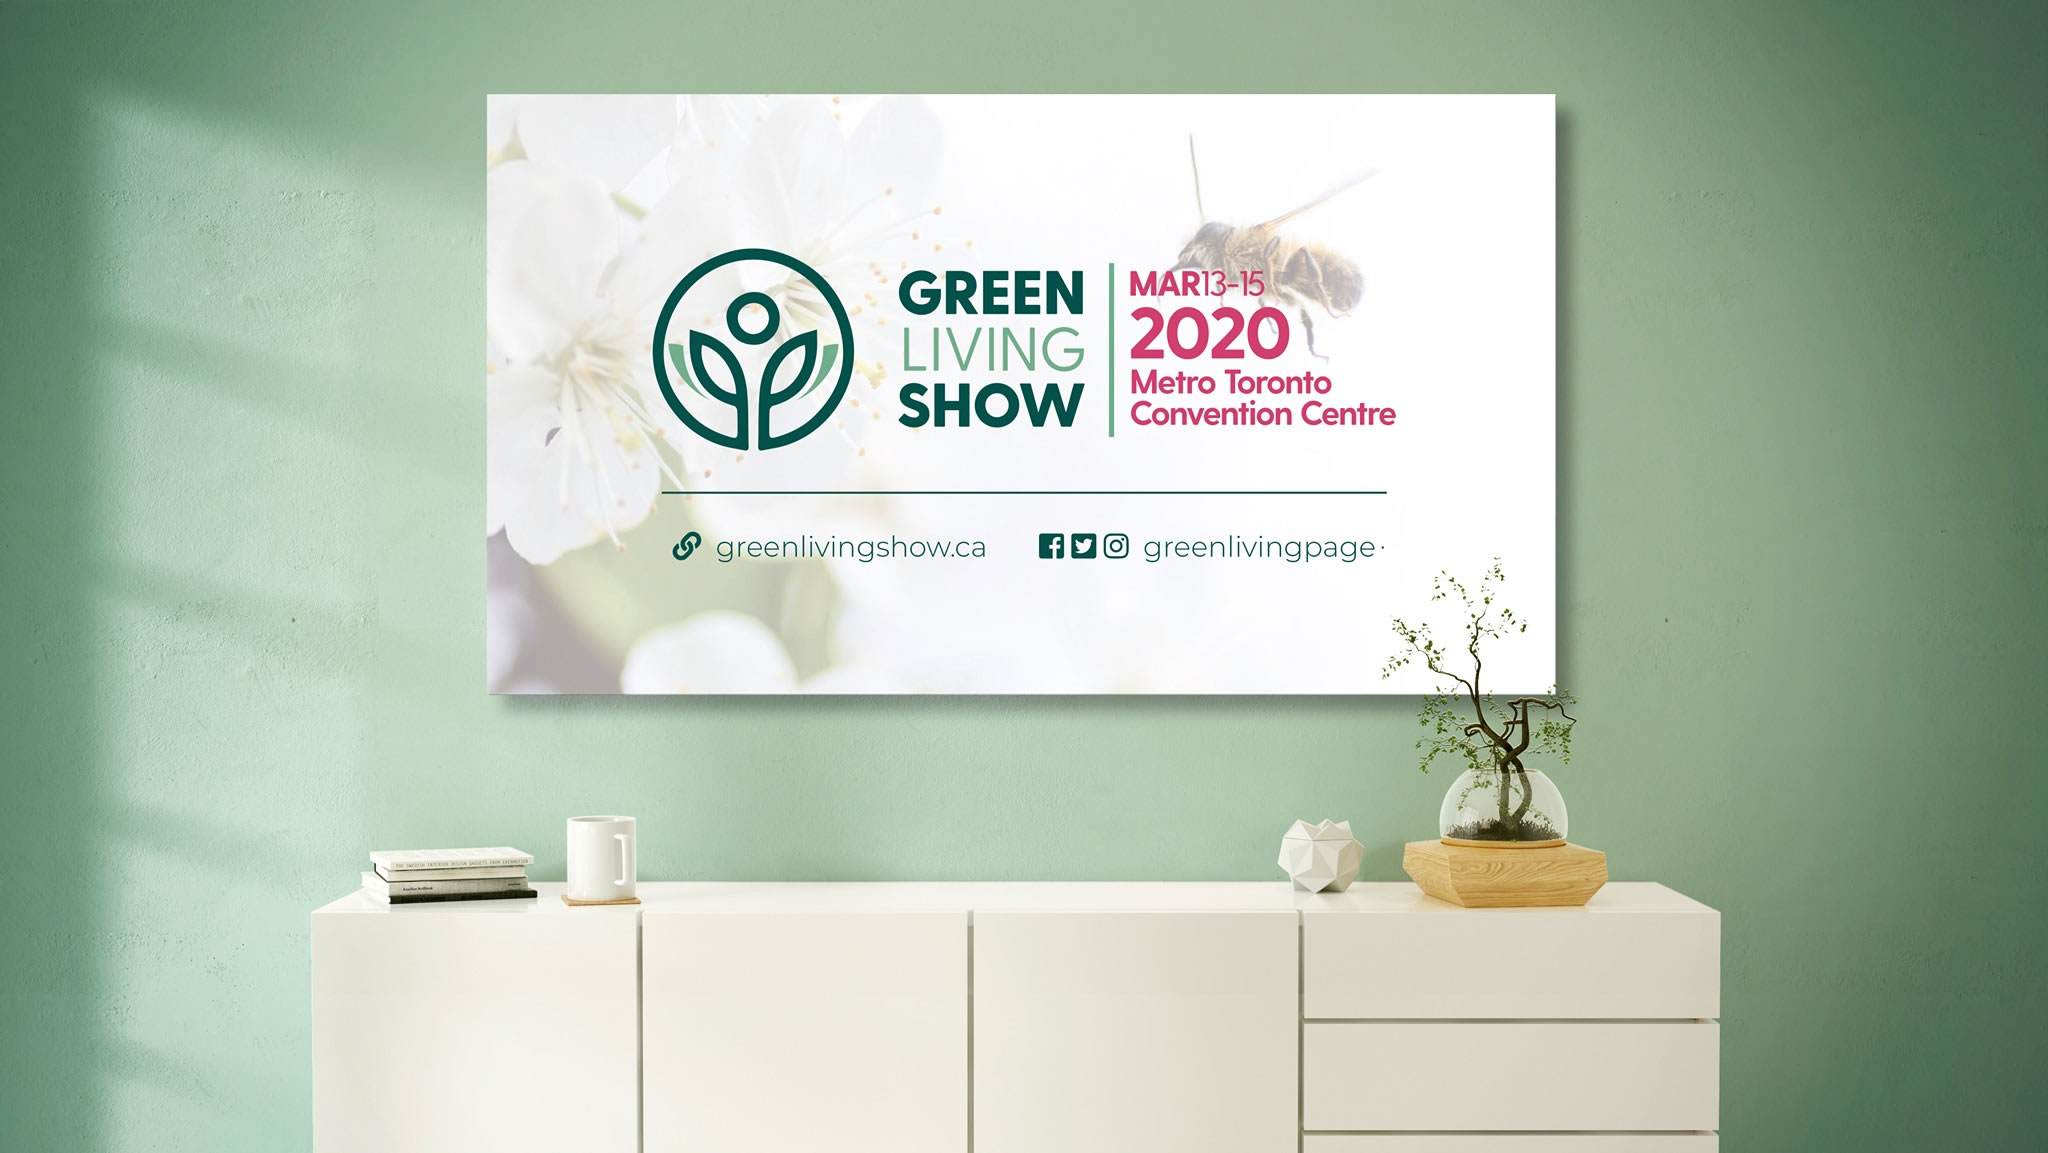 2020 Green Living Show dates